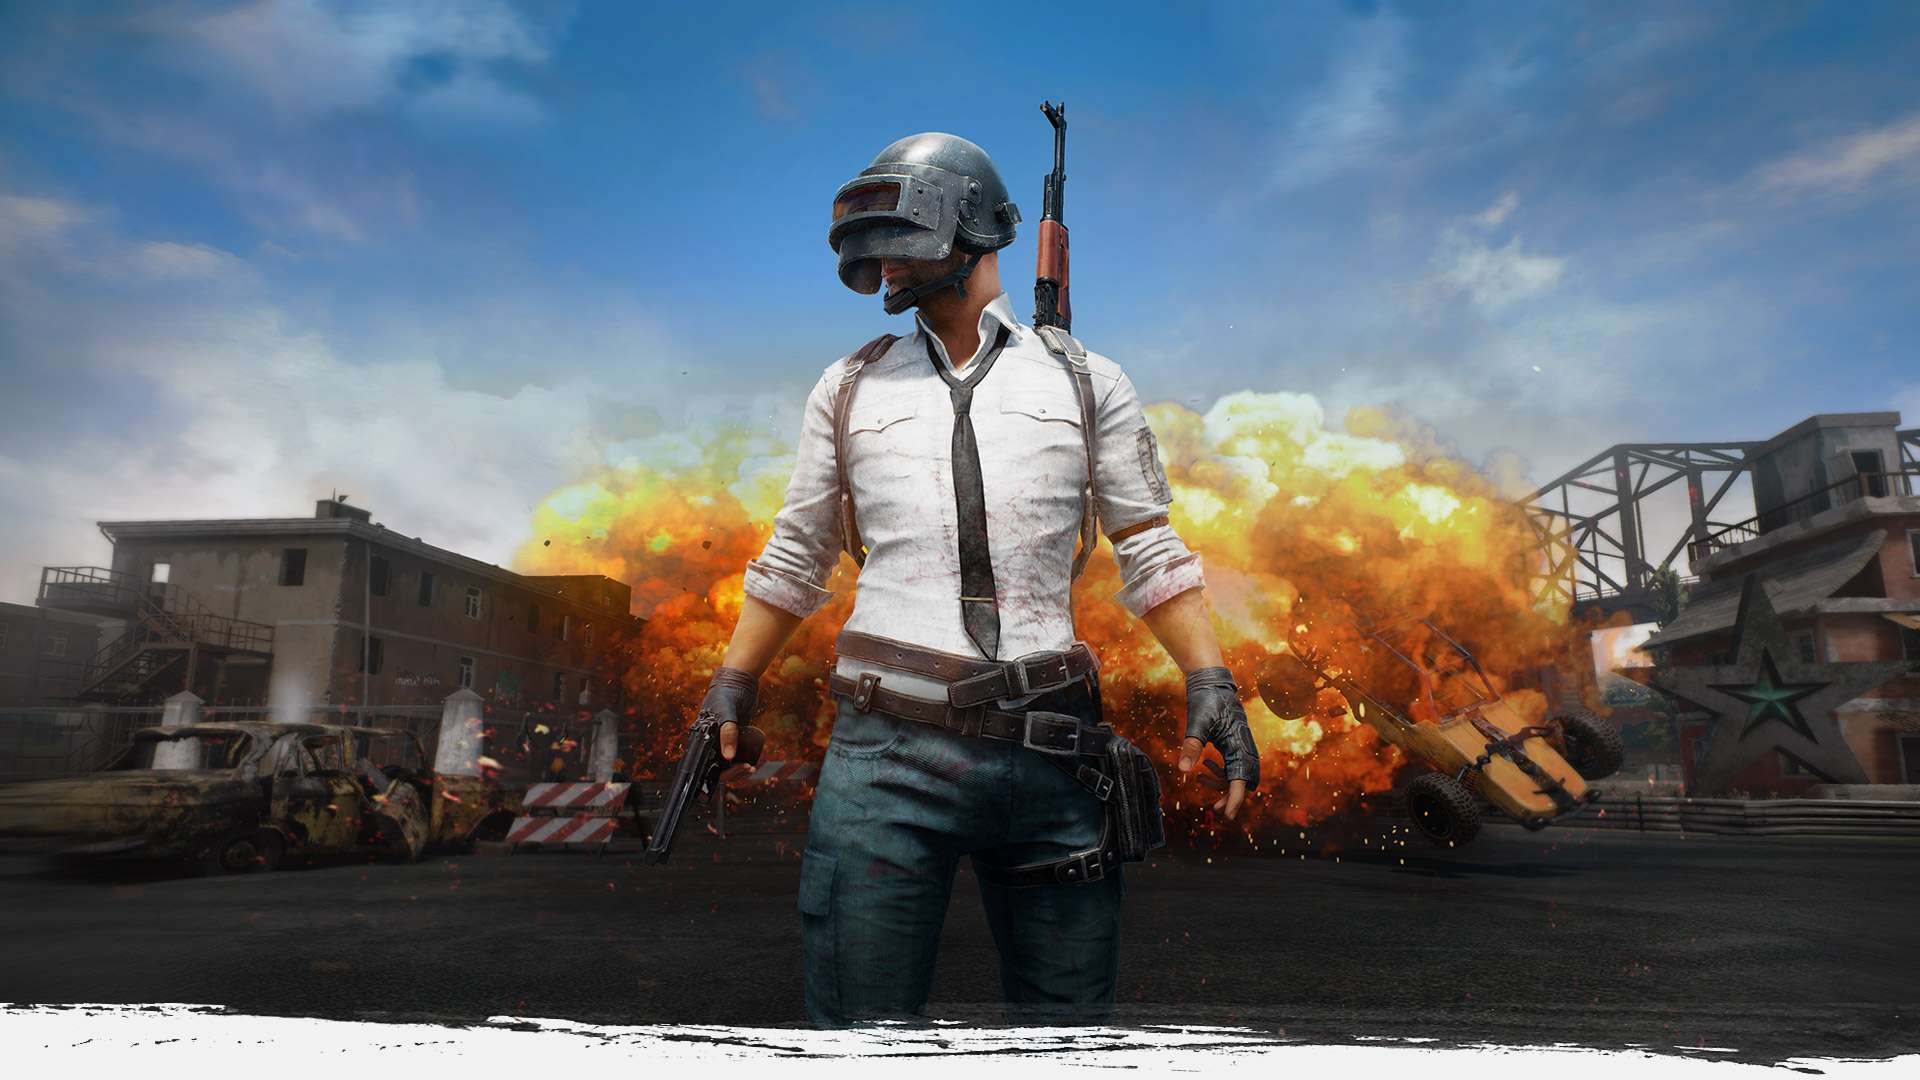 The new encryptor frees up your files if you play PUBG